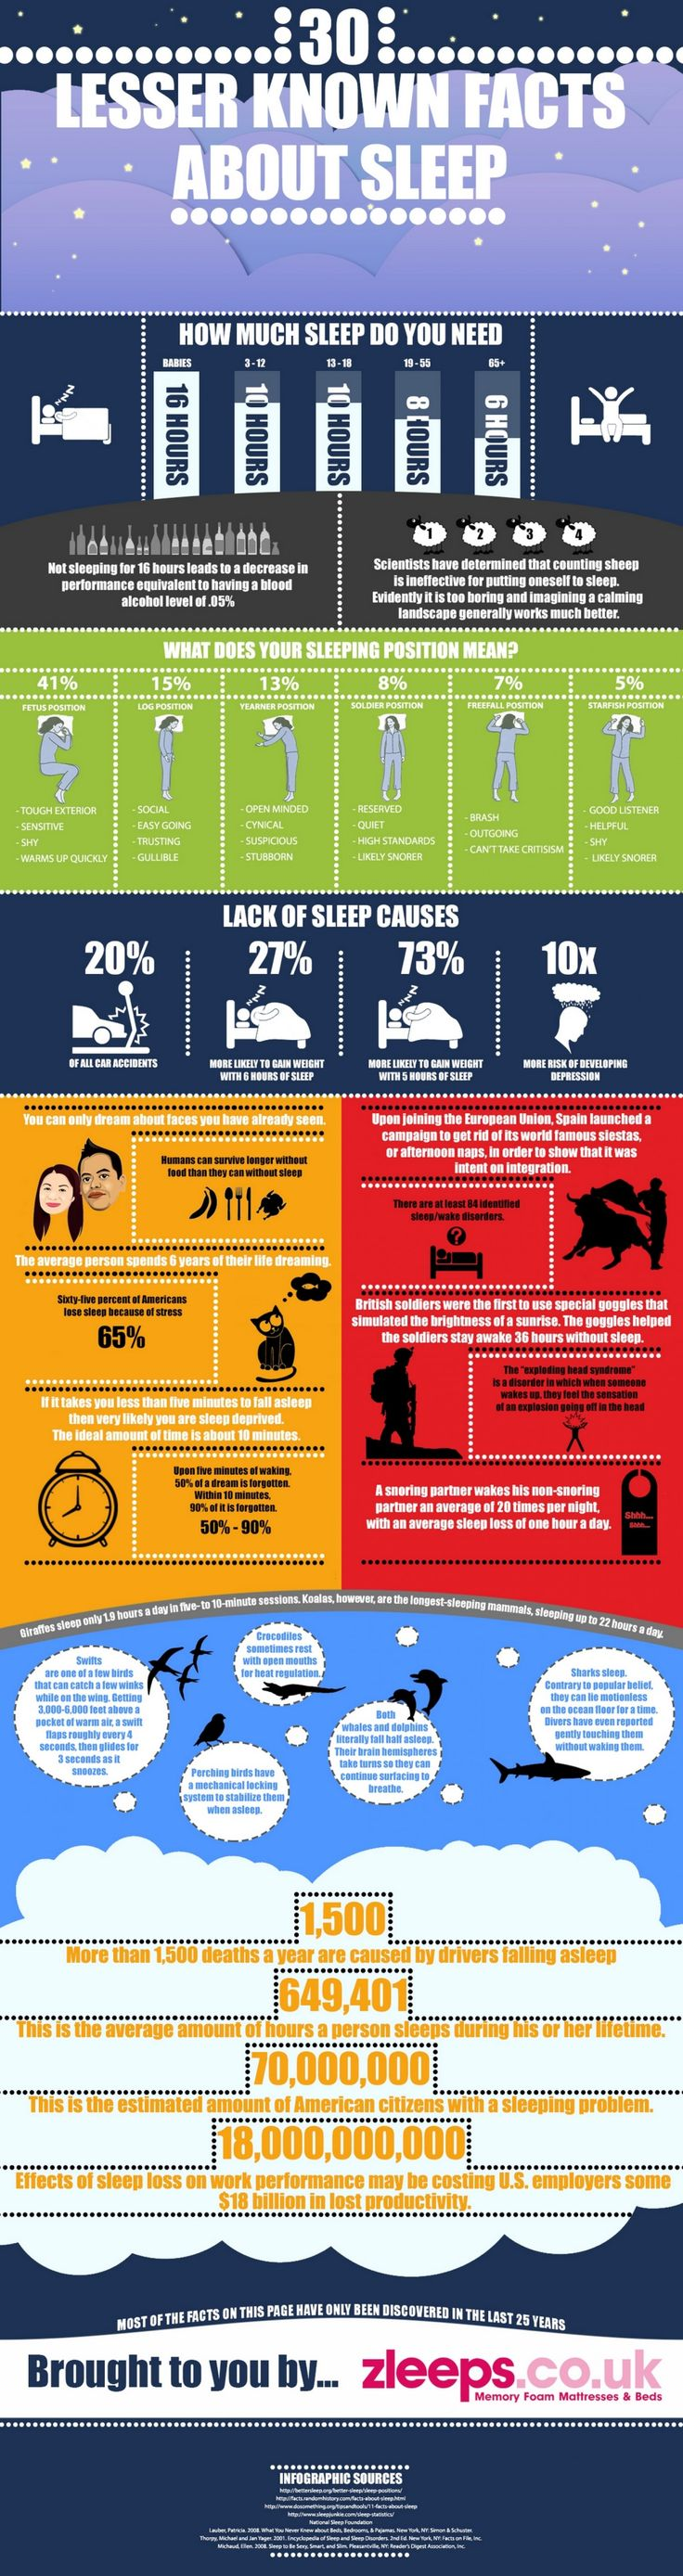 Have you ever wondered what your sleeping position means about you? Do you want to know how much you will sleep in your entire lifetime? Have you ever heard of exploding head syndrome? Zleeps.co.uk, one of the UK's leading memory foam manufacturer's has brought together the 30 most unusual and unknown facts about sleep for your personal reading pleasure. See more at: http://visual.ly/30-lesser-known-facts-about-sleep#sthash.Kcjq7lHK.dpuf